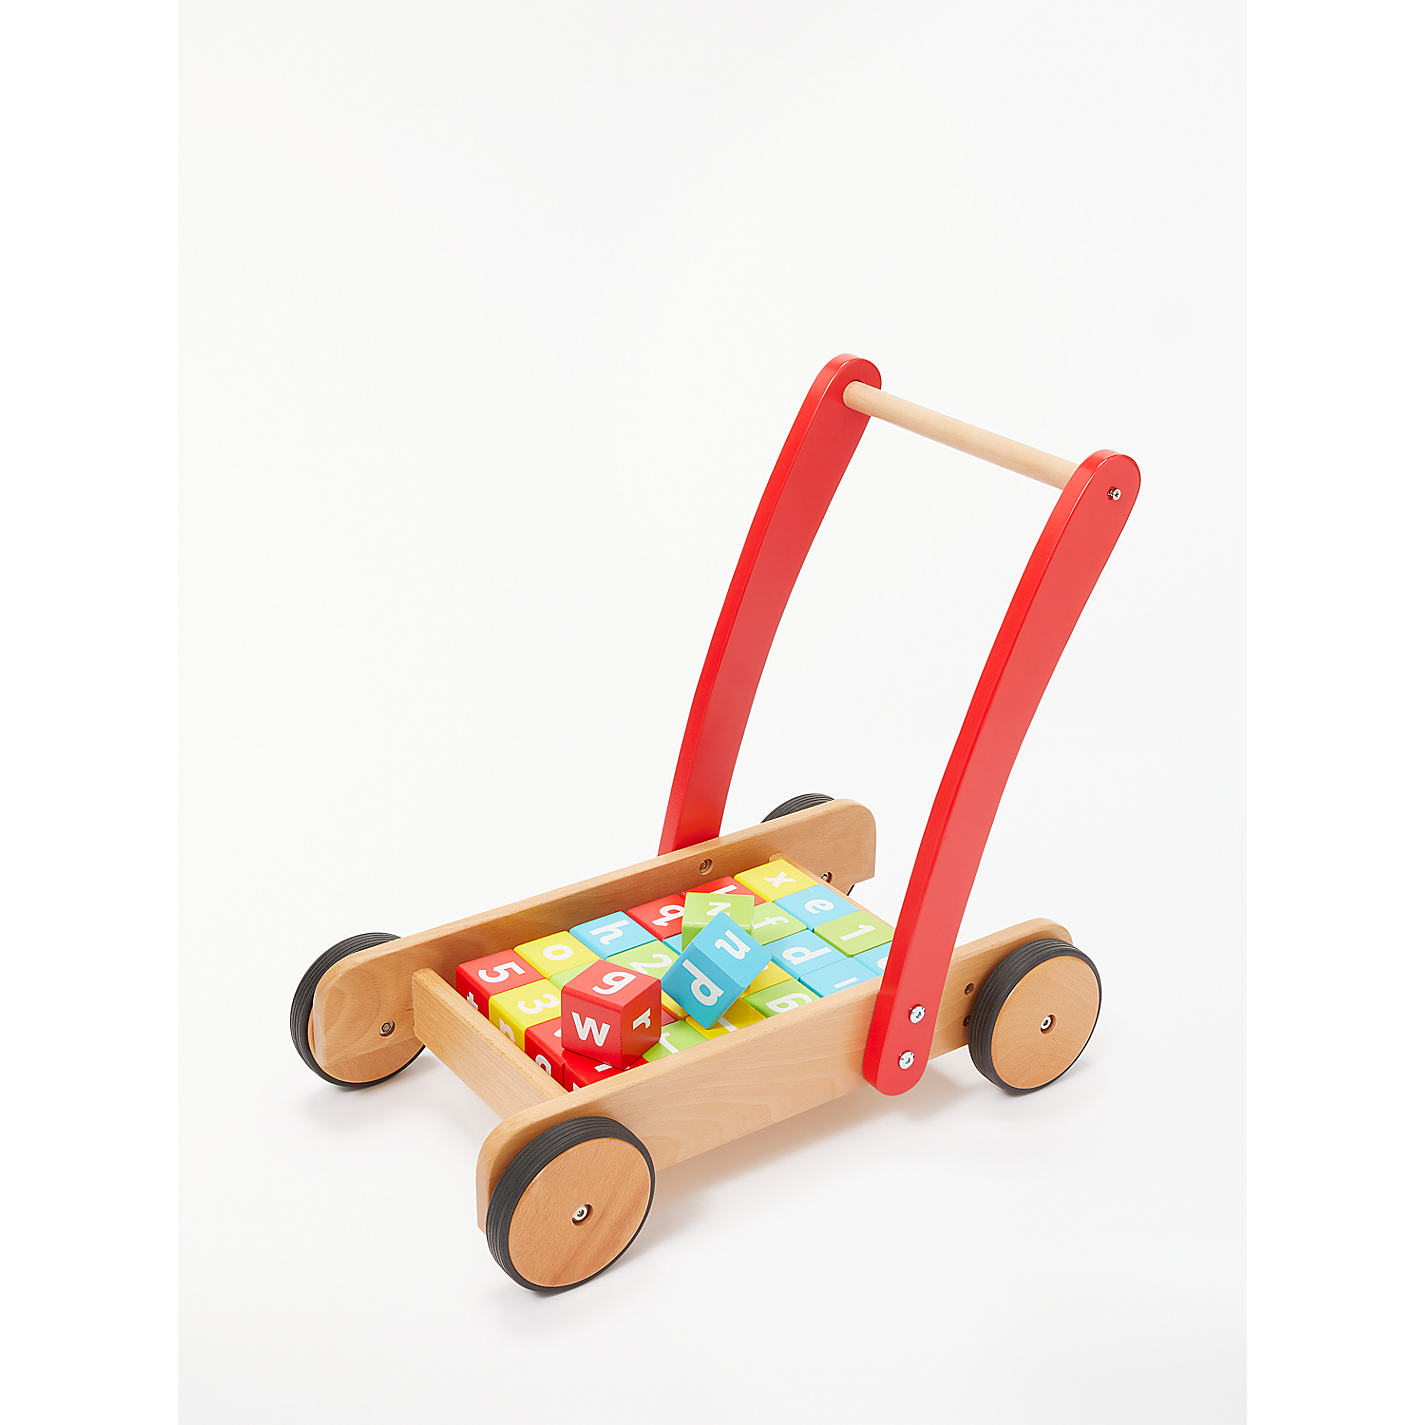 Buy john lewis wooden baby walker and bricks john lewis buy john lewis wooden baby walker and bricks online at johnlewis negle Image collections